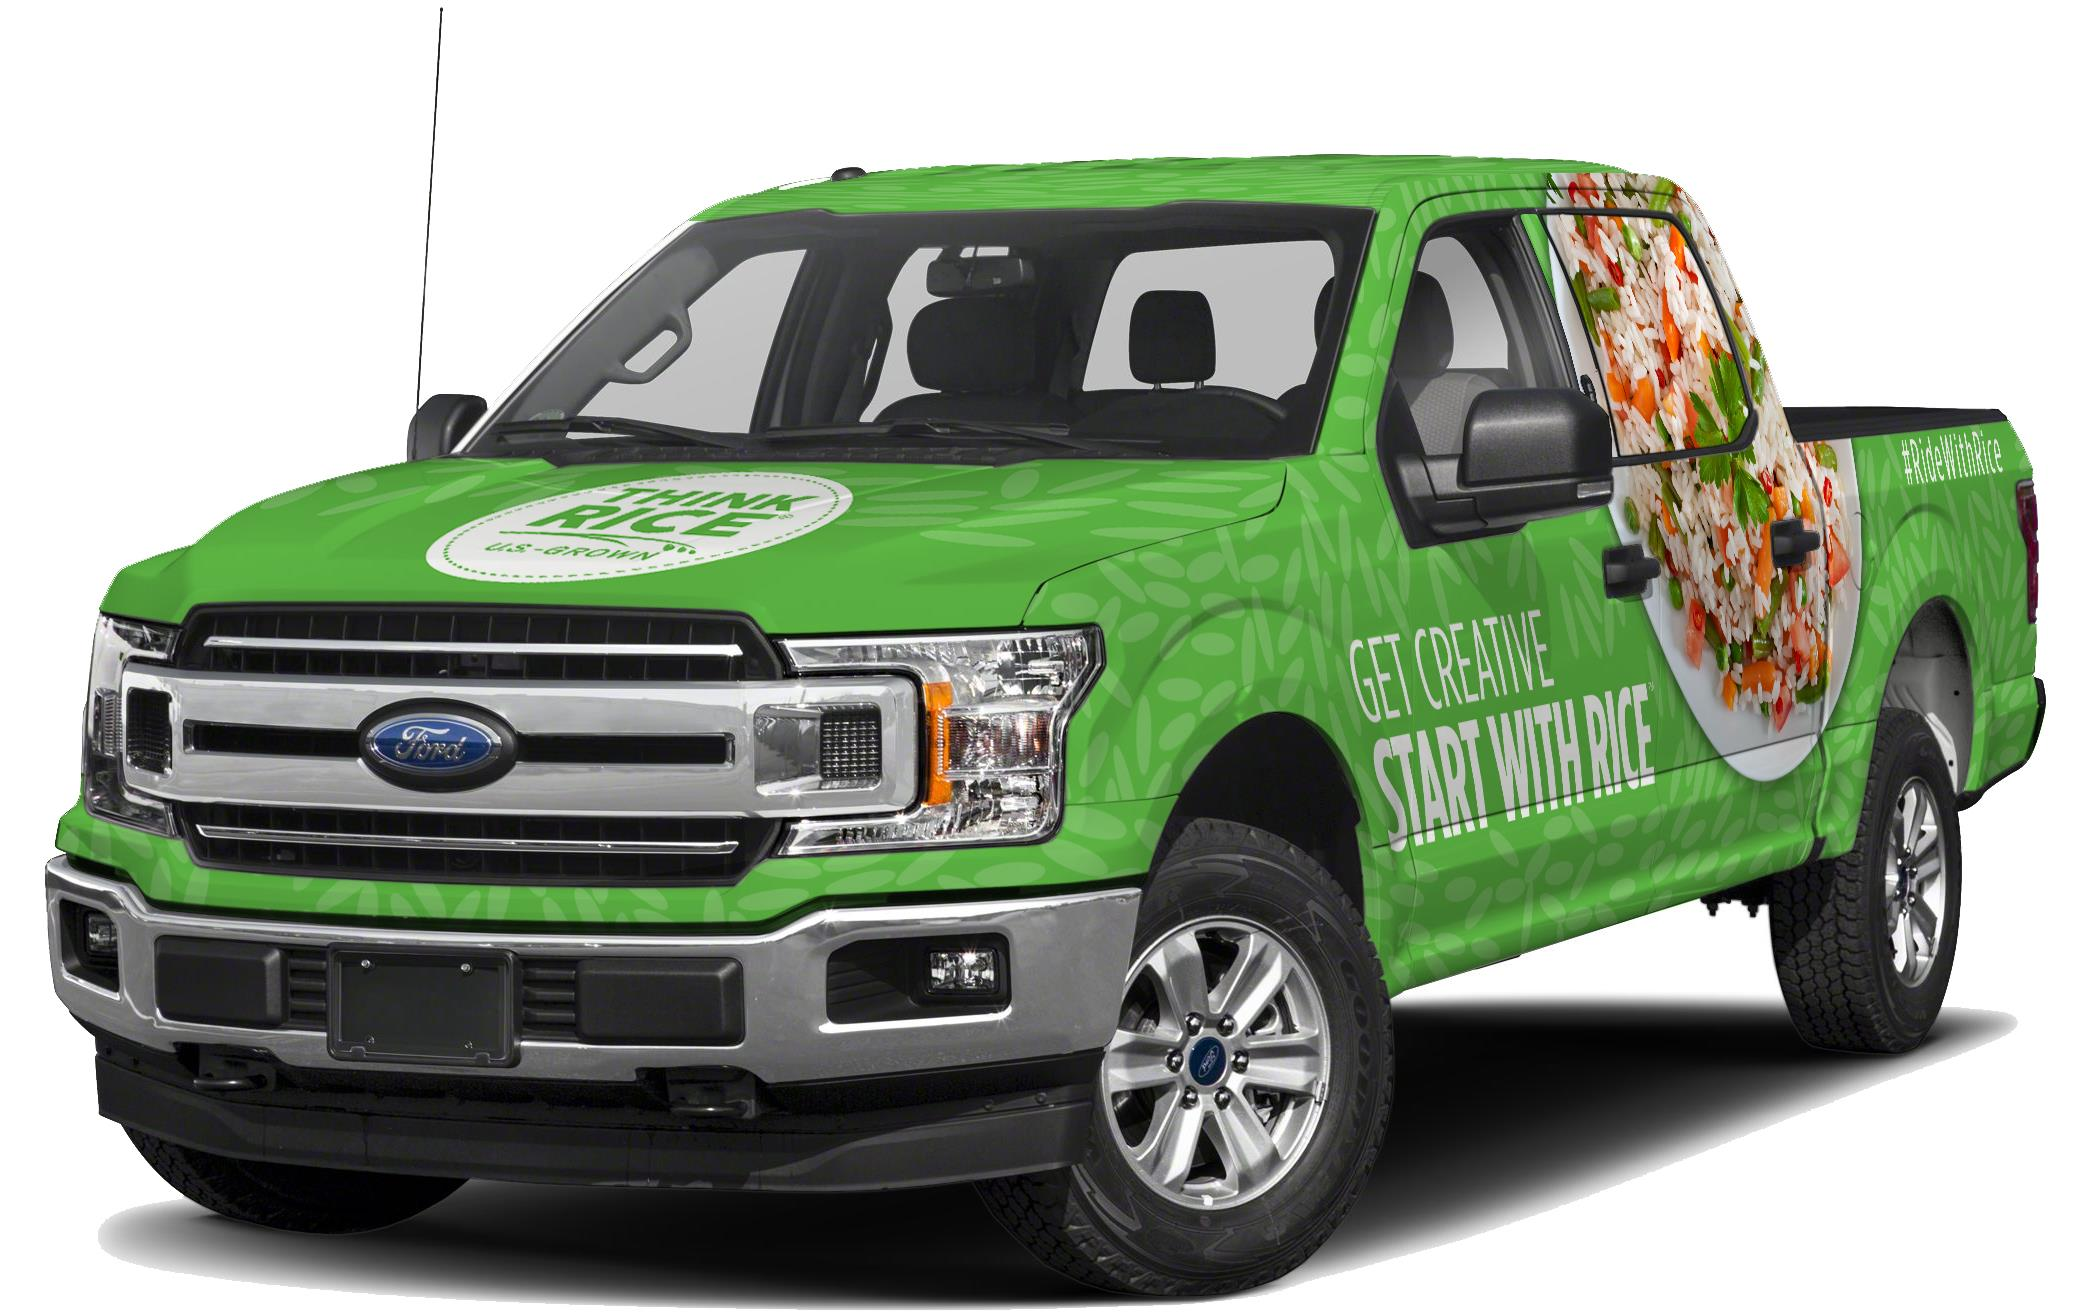 """Green Ford pickup truck with decals saying """"Think Rice,"""" """"Get Creative Start with Rice"""" and a large photo of rice bowl covering back passenger window"""